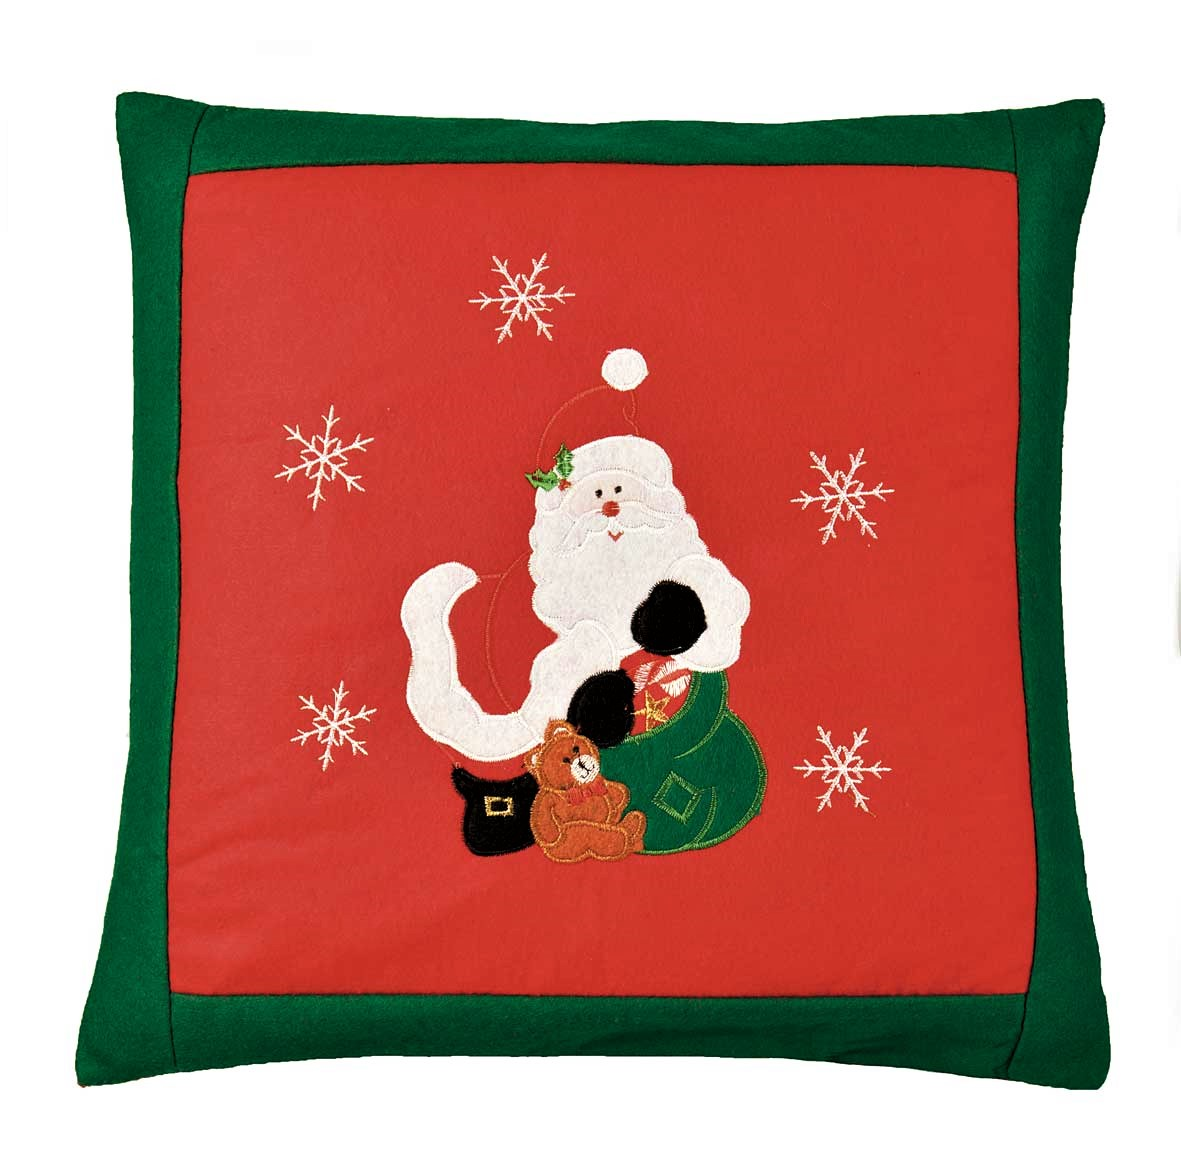 Felt Santa cushion cover in a 16 x 16 inch square